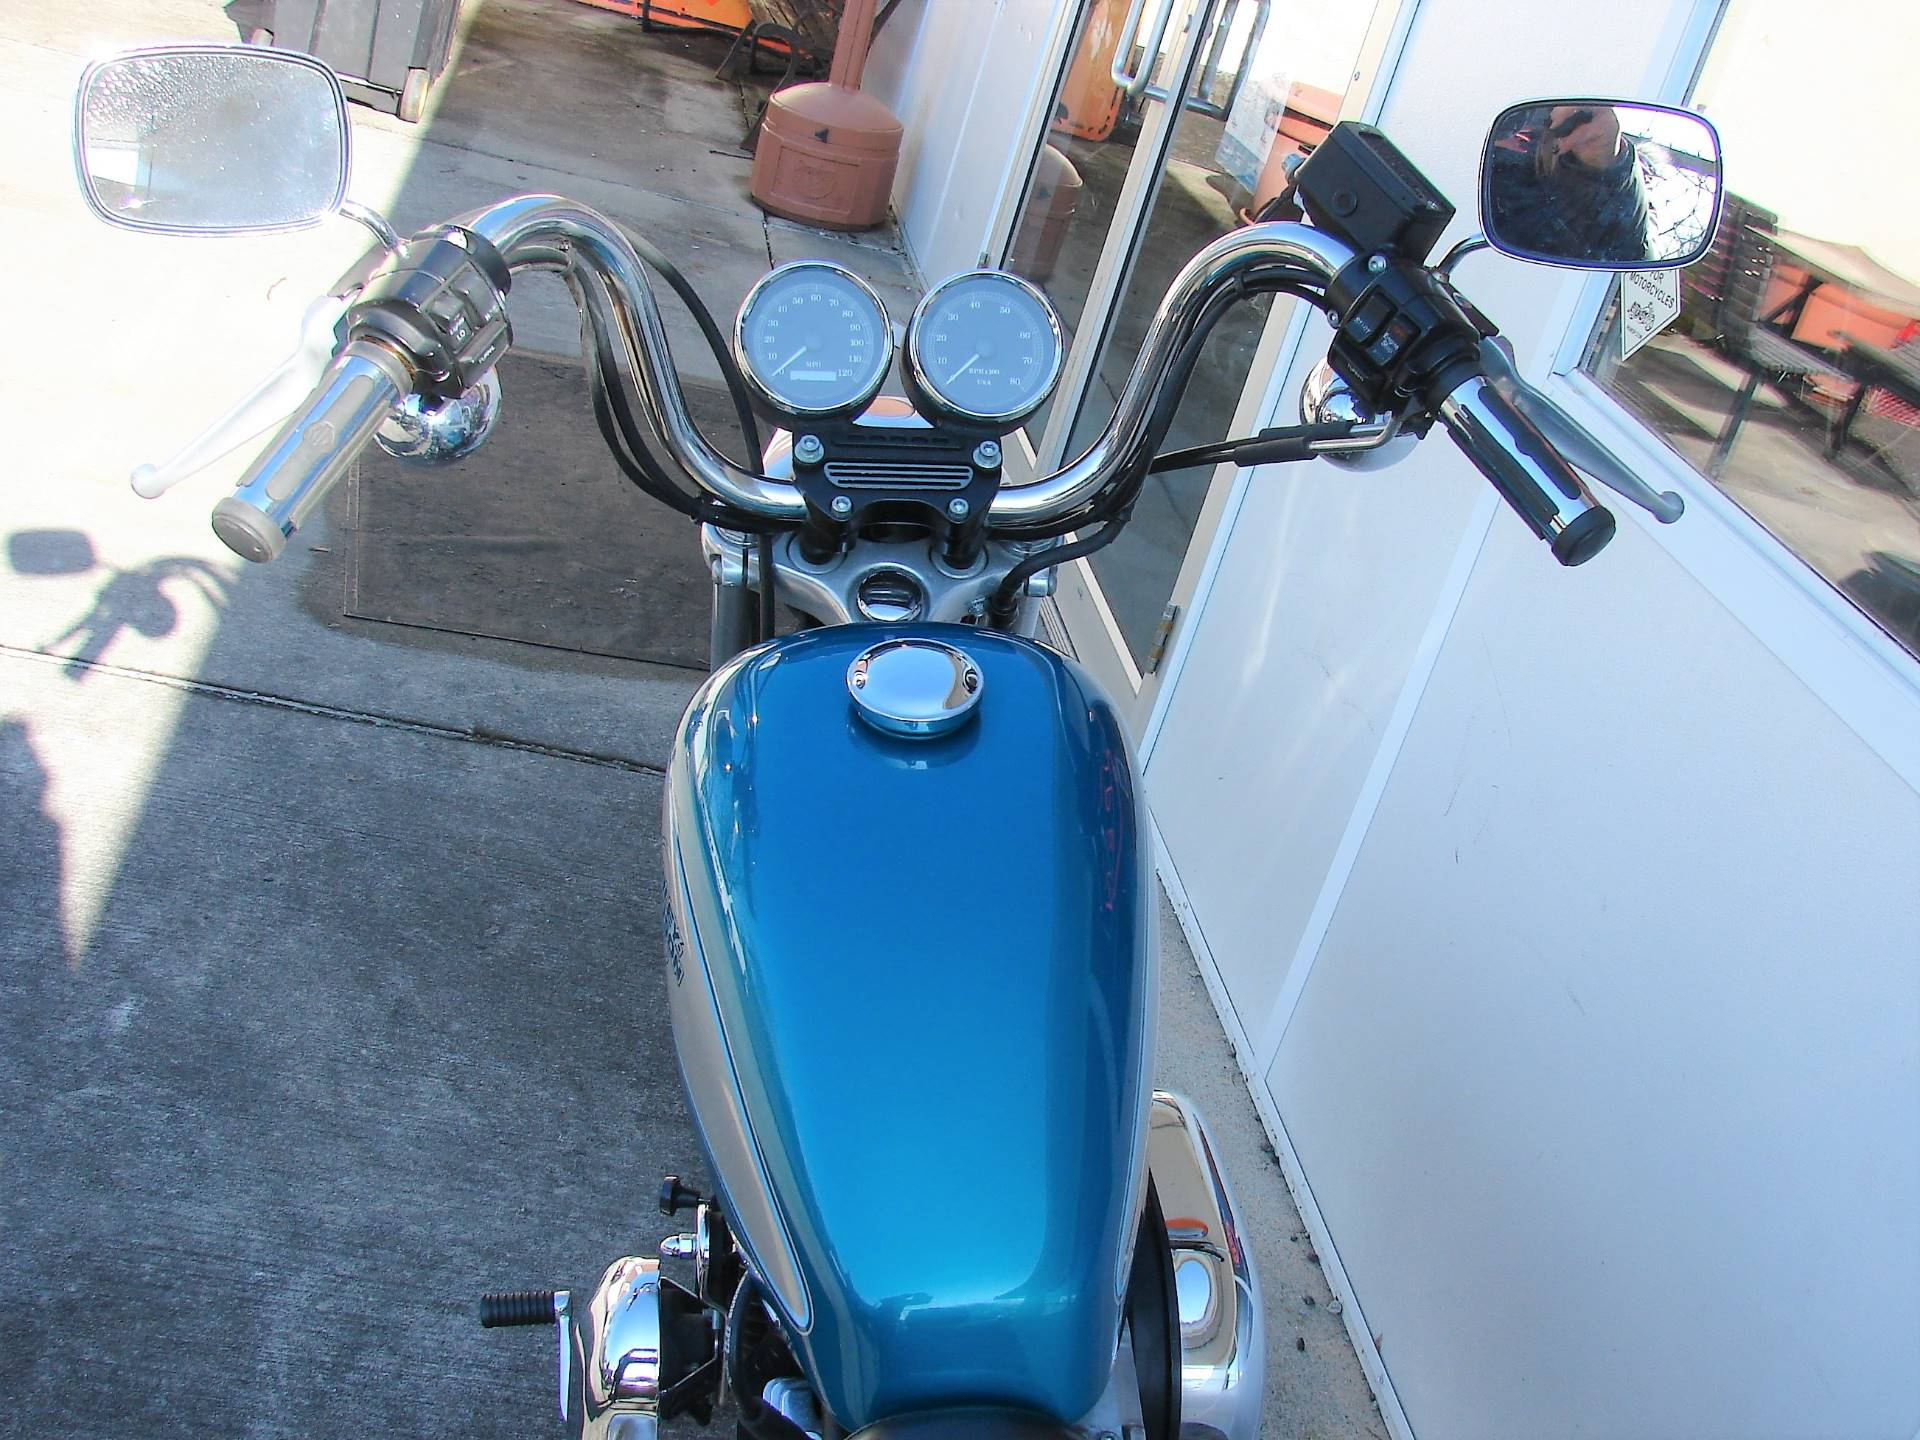 1995 Harley-Davidson 1200 Sportster  (Teal Blue and Silver) in Williamstown, New Jersey - Photo 9